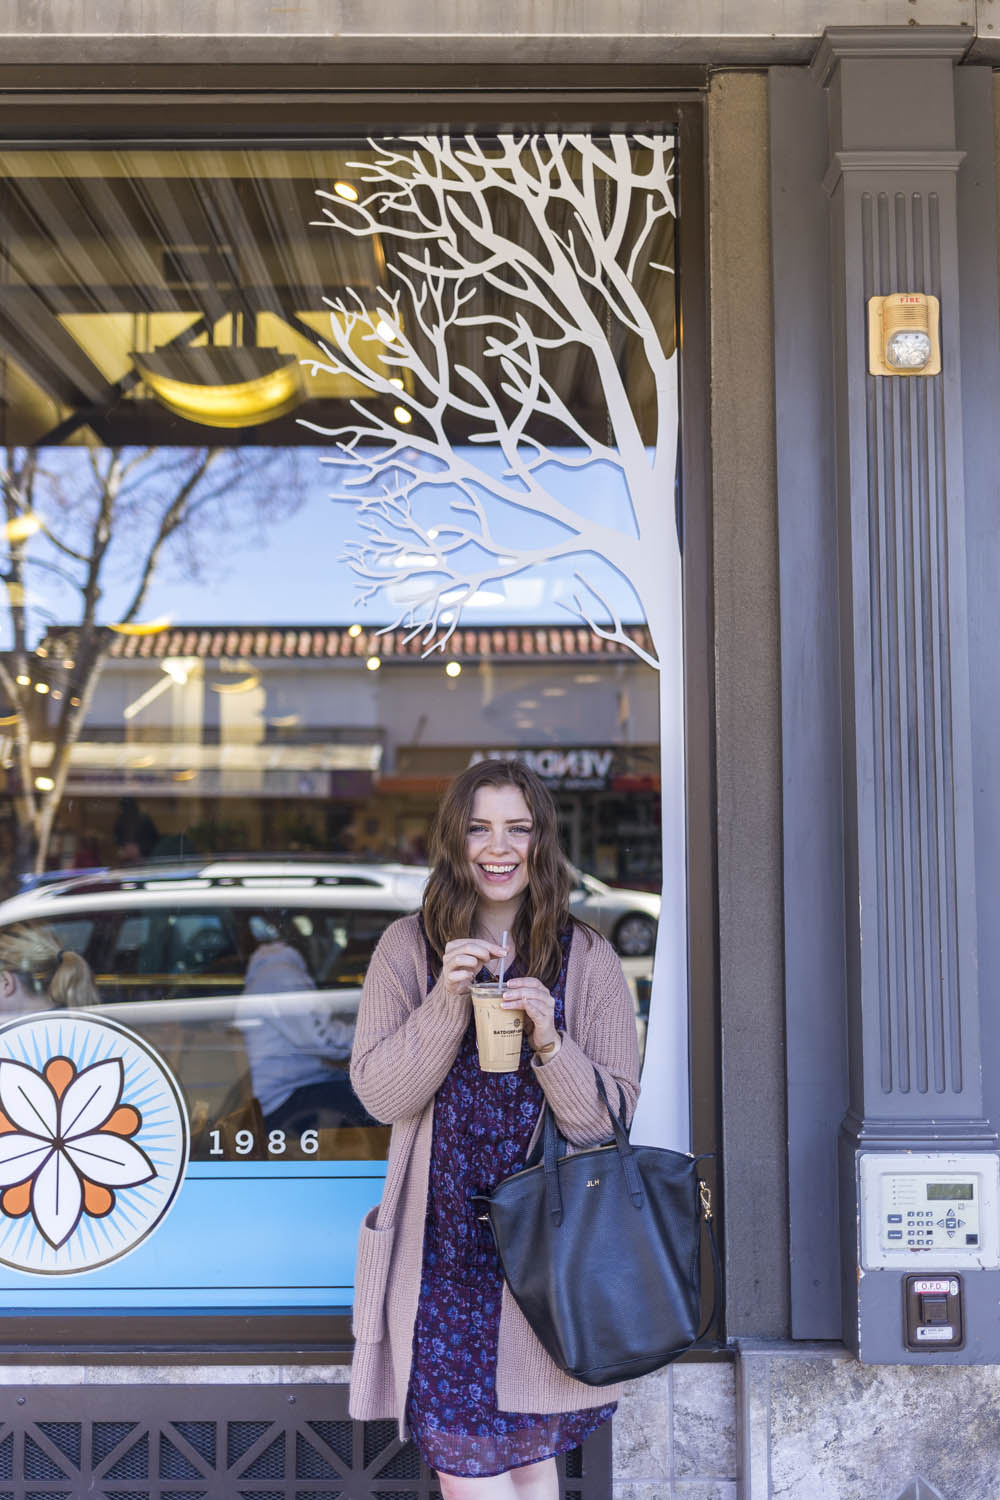 Things to do in Olympia, WA: Take a Coffee Tour and drink Coffee at Batdorf & Bronson // Seattle Travel Blog